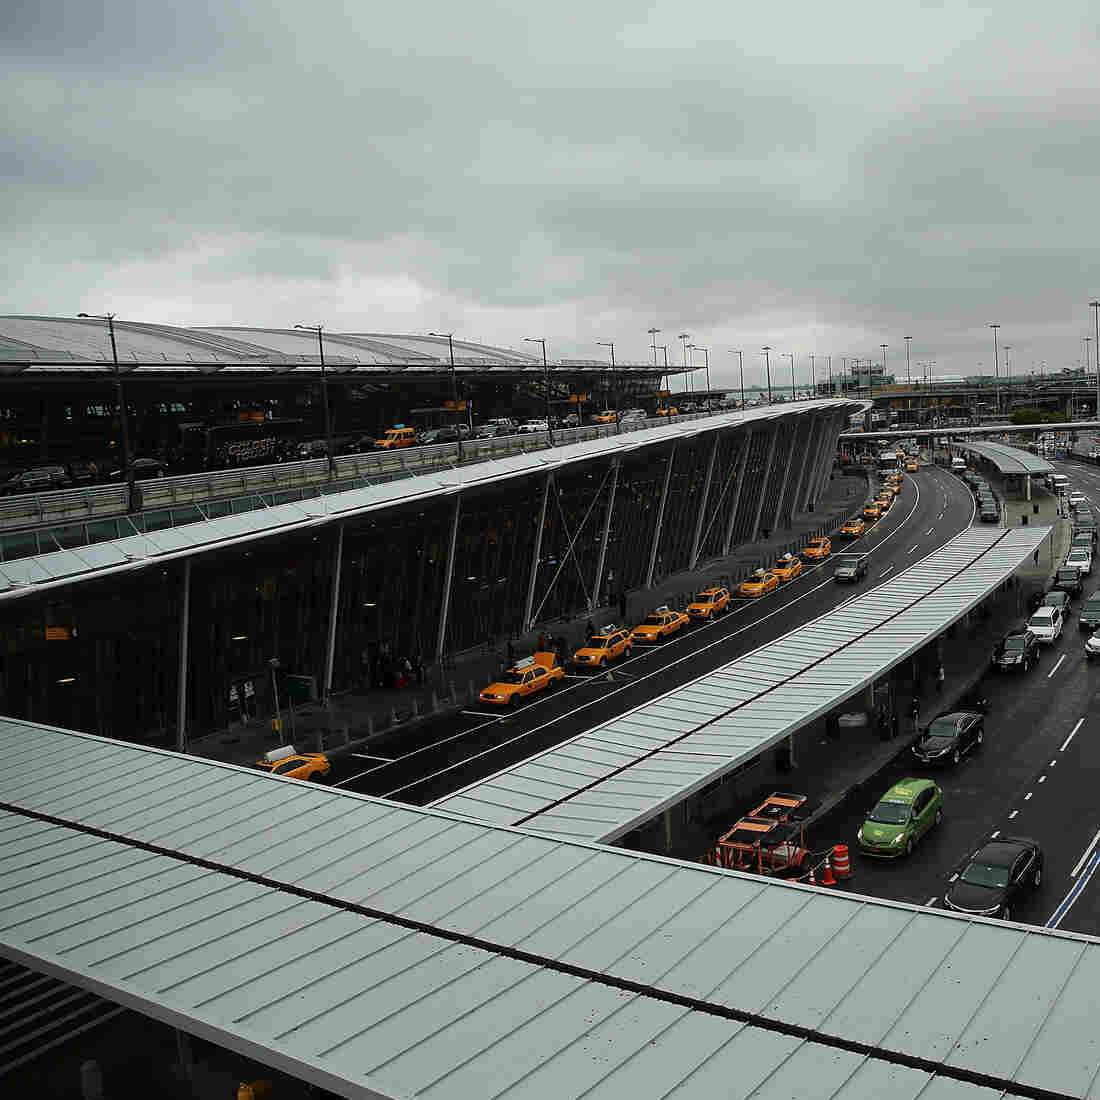 The man who died of Lassa fever flew from West Africa to New York's John F. Kennedy Airport.